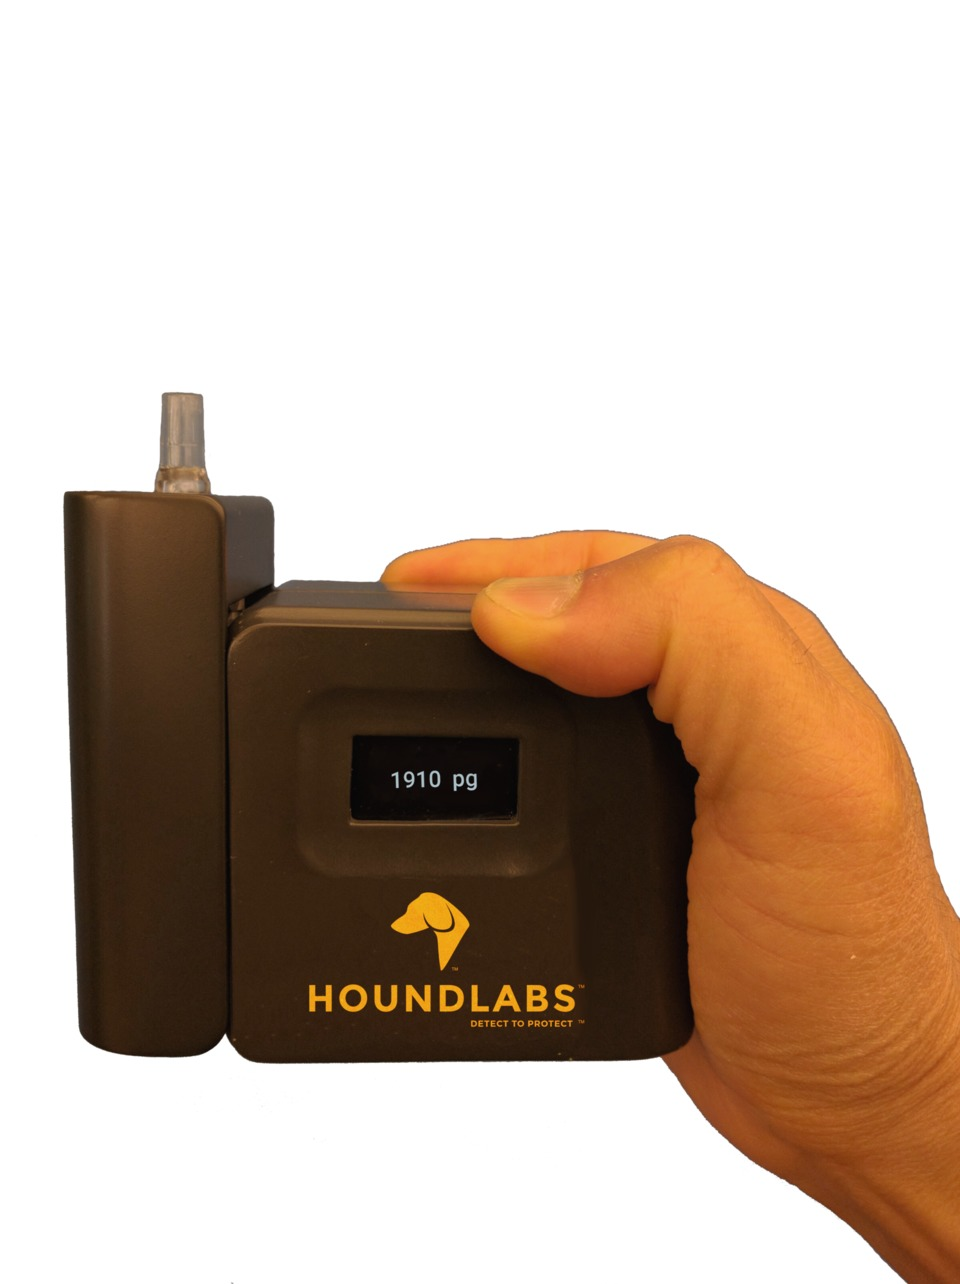 Portable Breathalyzer Test >> Hound Labs The Hound Marijuana Breathalyzer Roadside Test Device - Detects both Smoked and ...